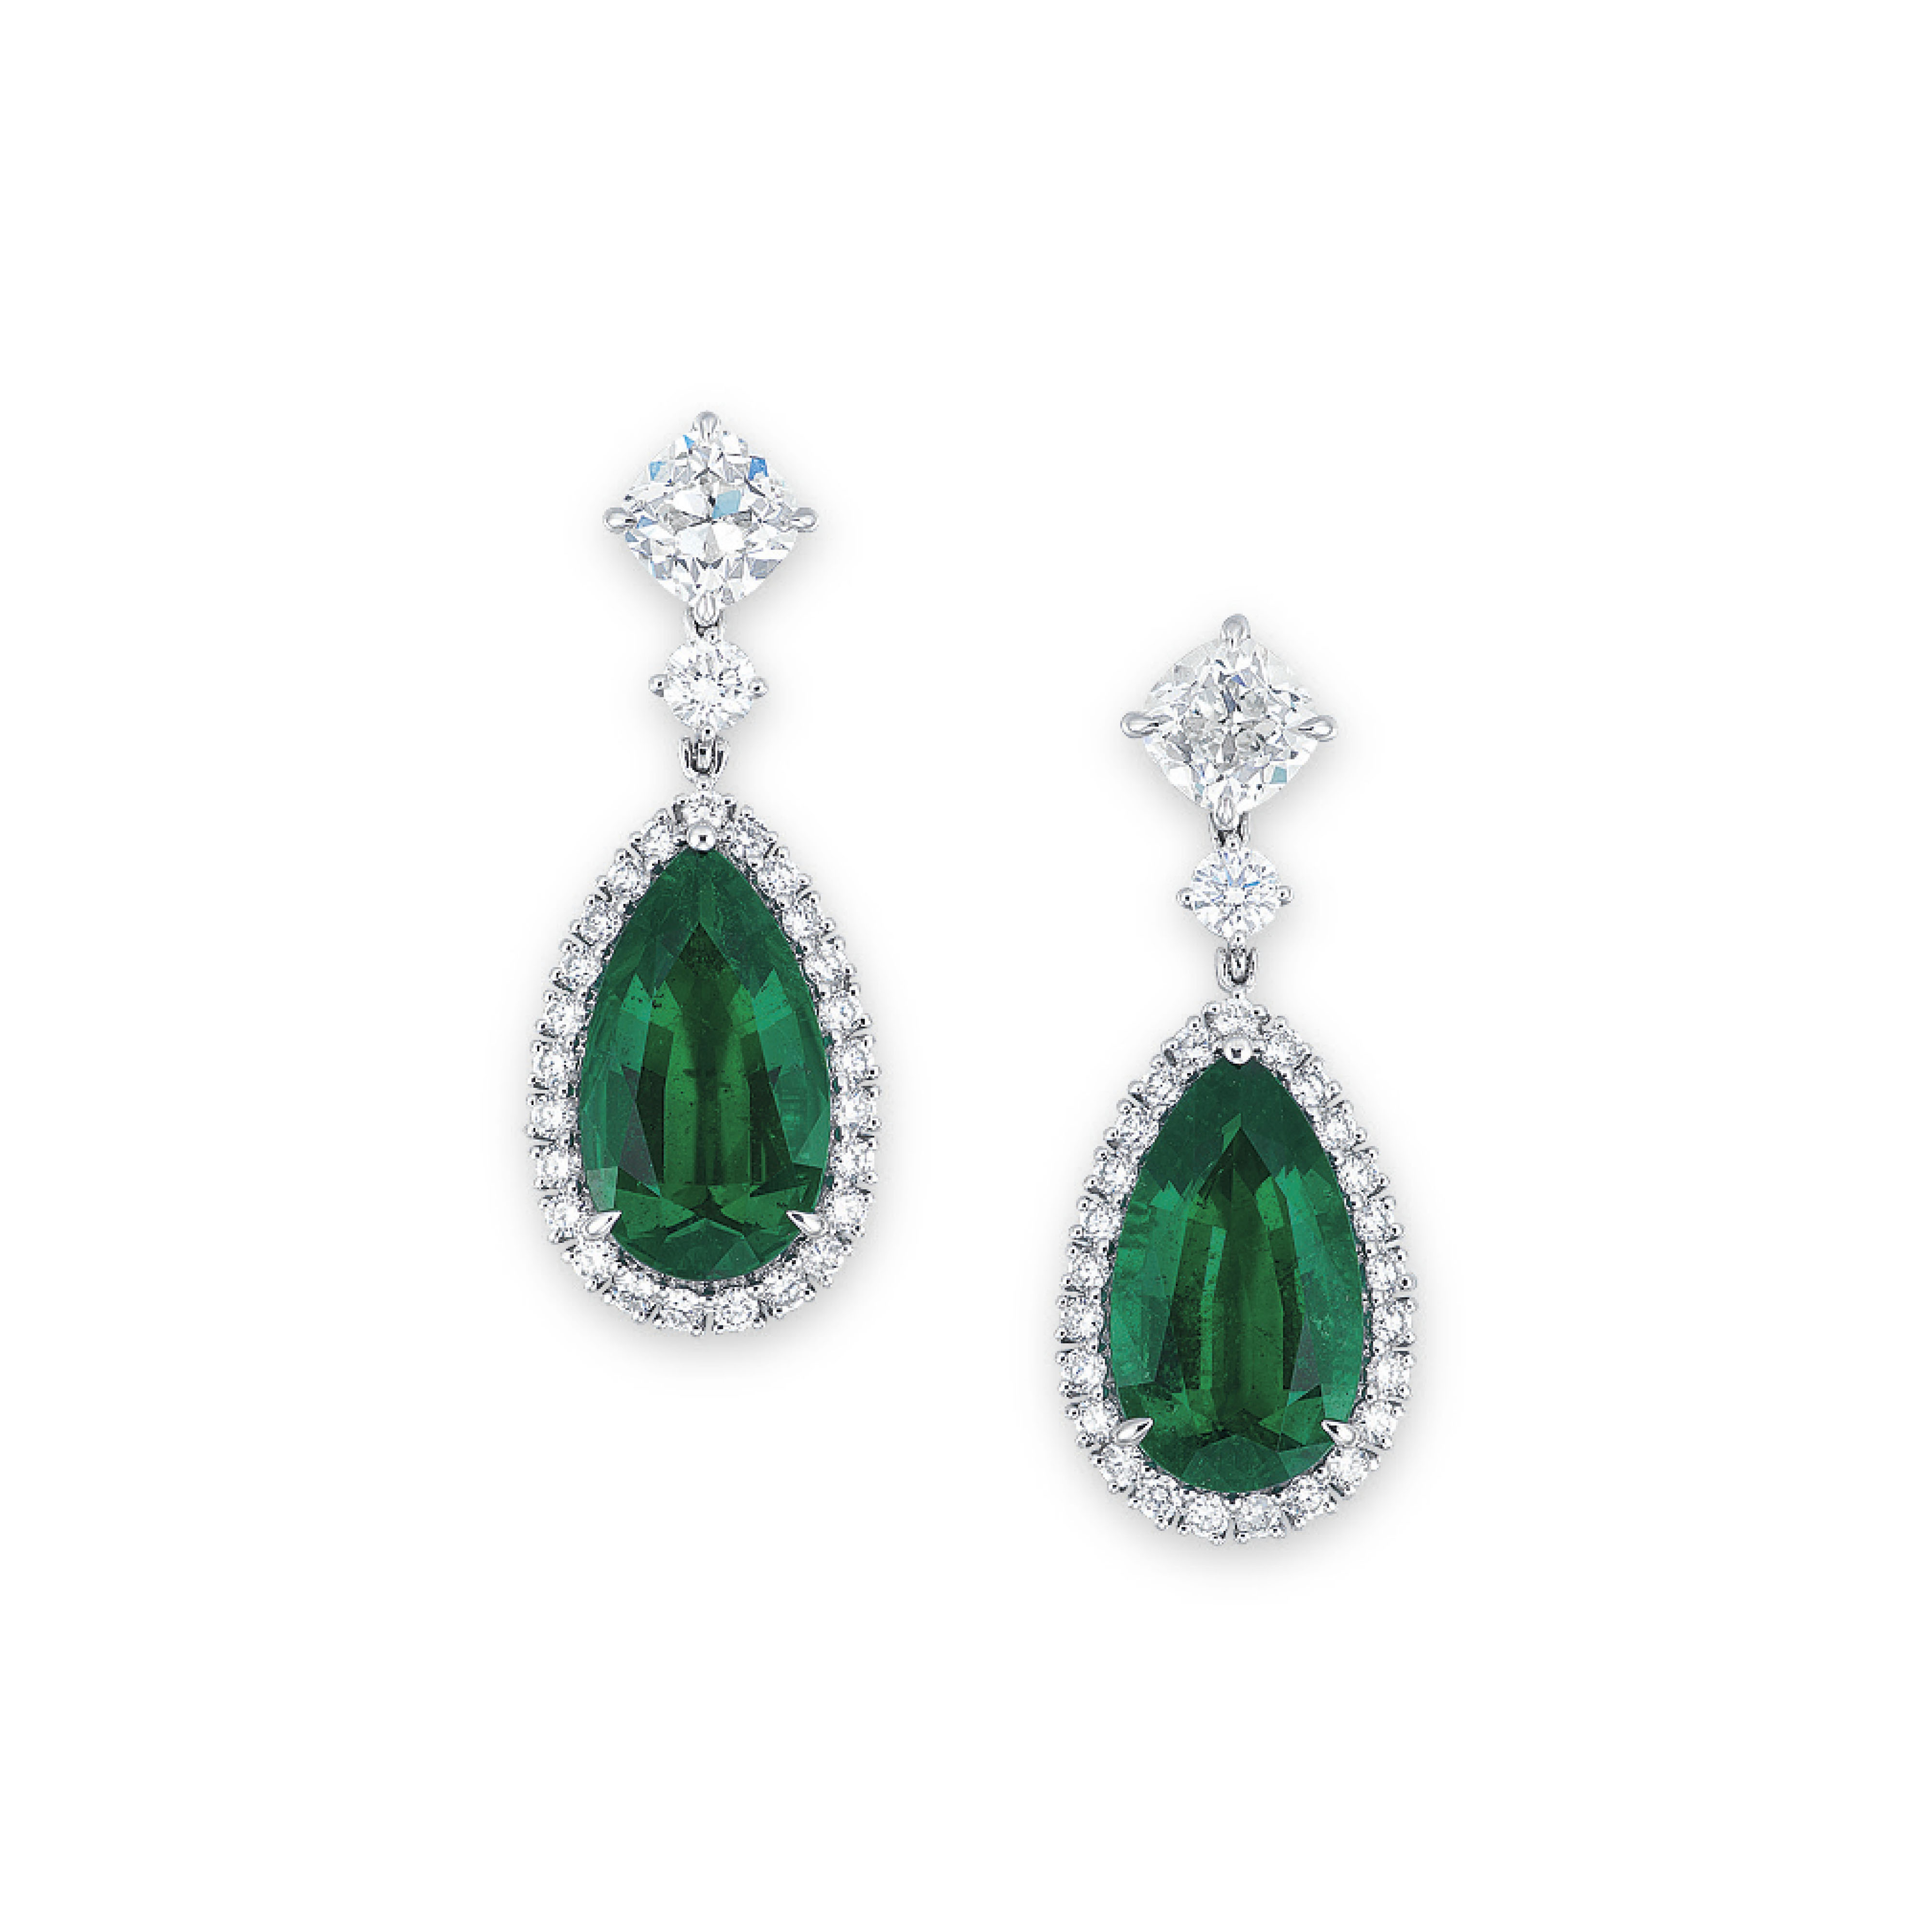 AN IMPORTANT PAIR OF EMERALD A